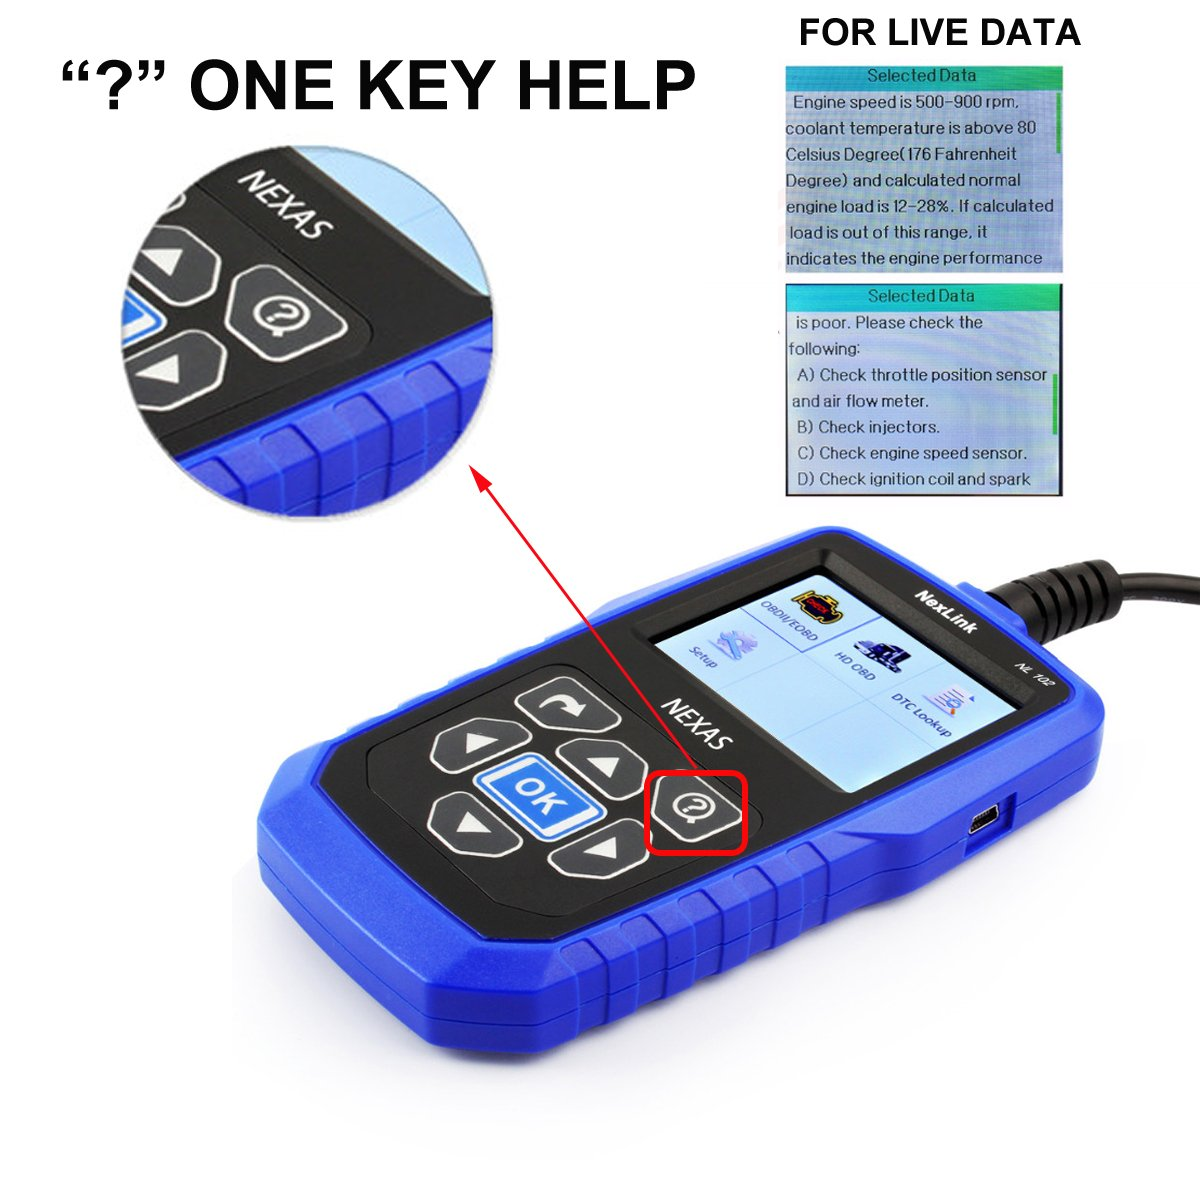 Nexas Heavy Duty Truck Scanner Nl102 Obd Eobd Hdobd Hino Engine Coolant Blue Diagnostic Scan Tools Abs Transmission Check Trucks Cars 2 In 1 Codes